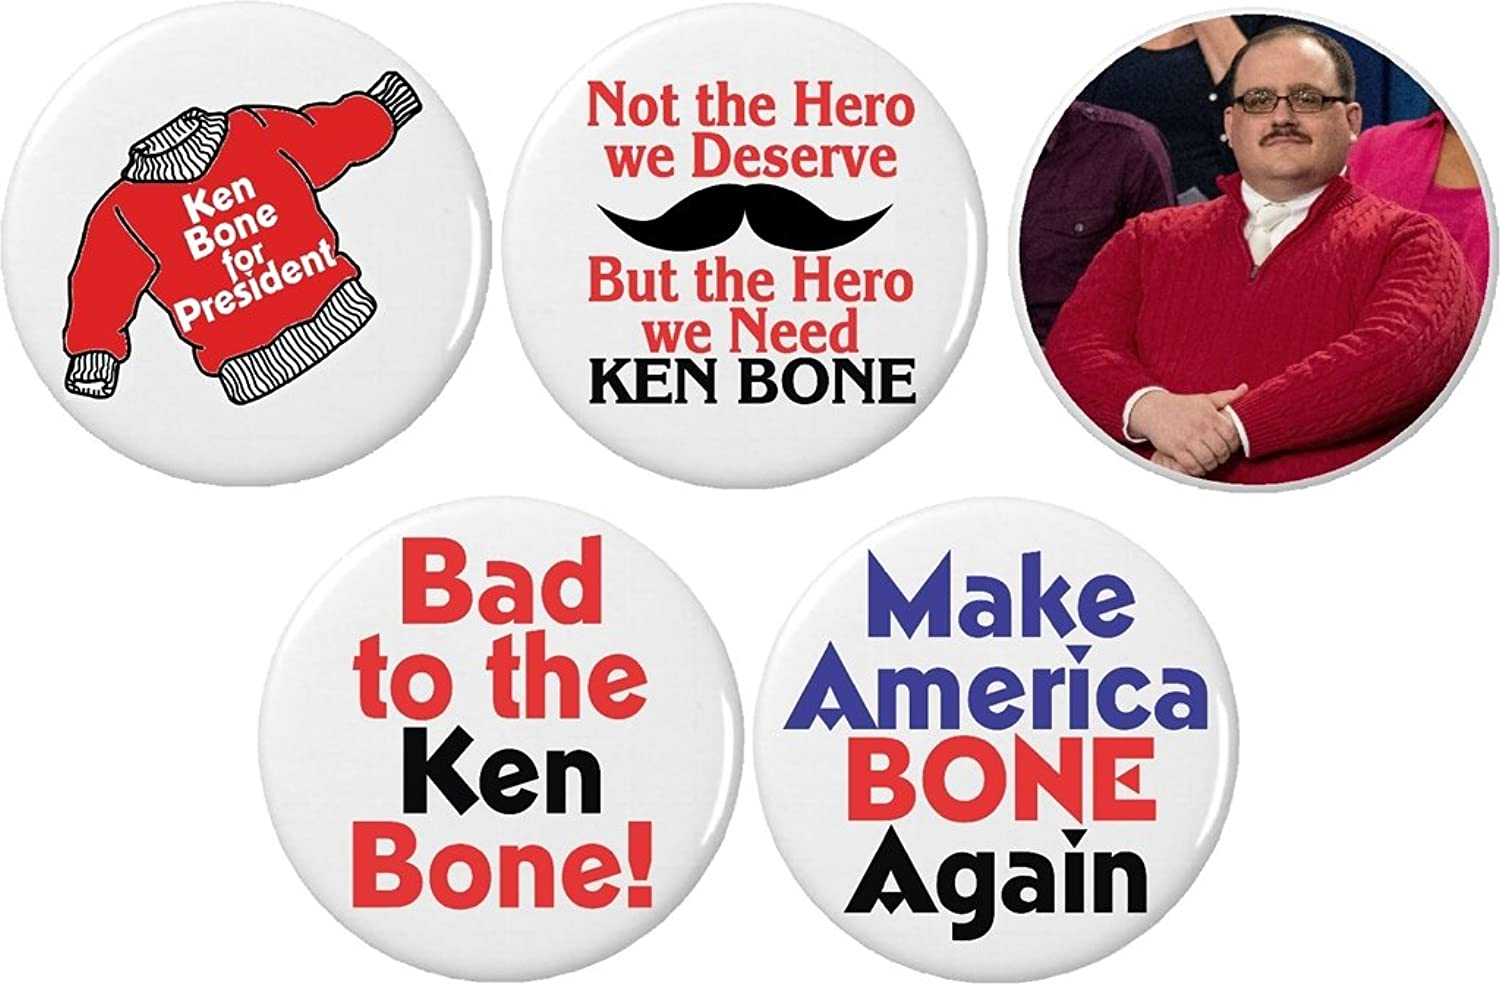 Amazon.com: Set 5 Ken Bone Red Sweater Hero President Debate Funny ...